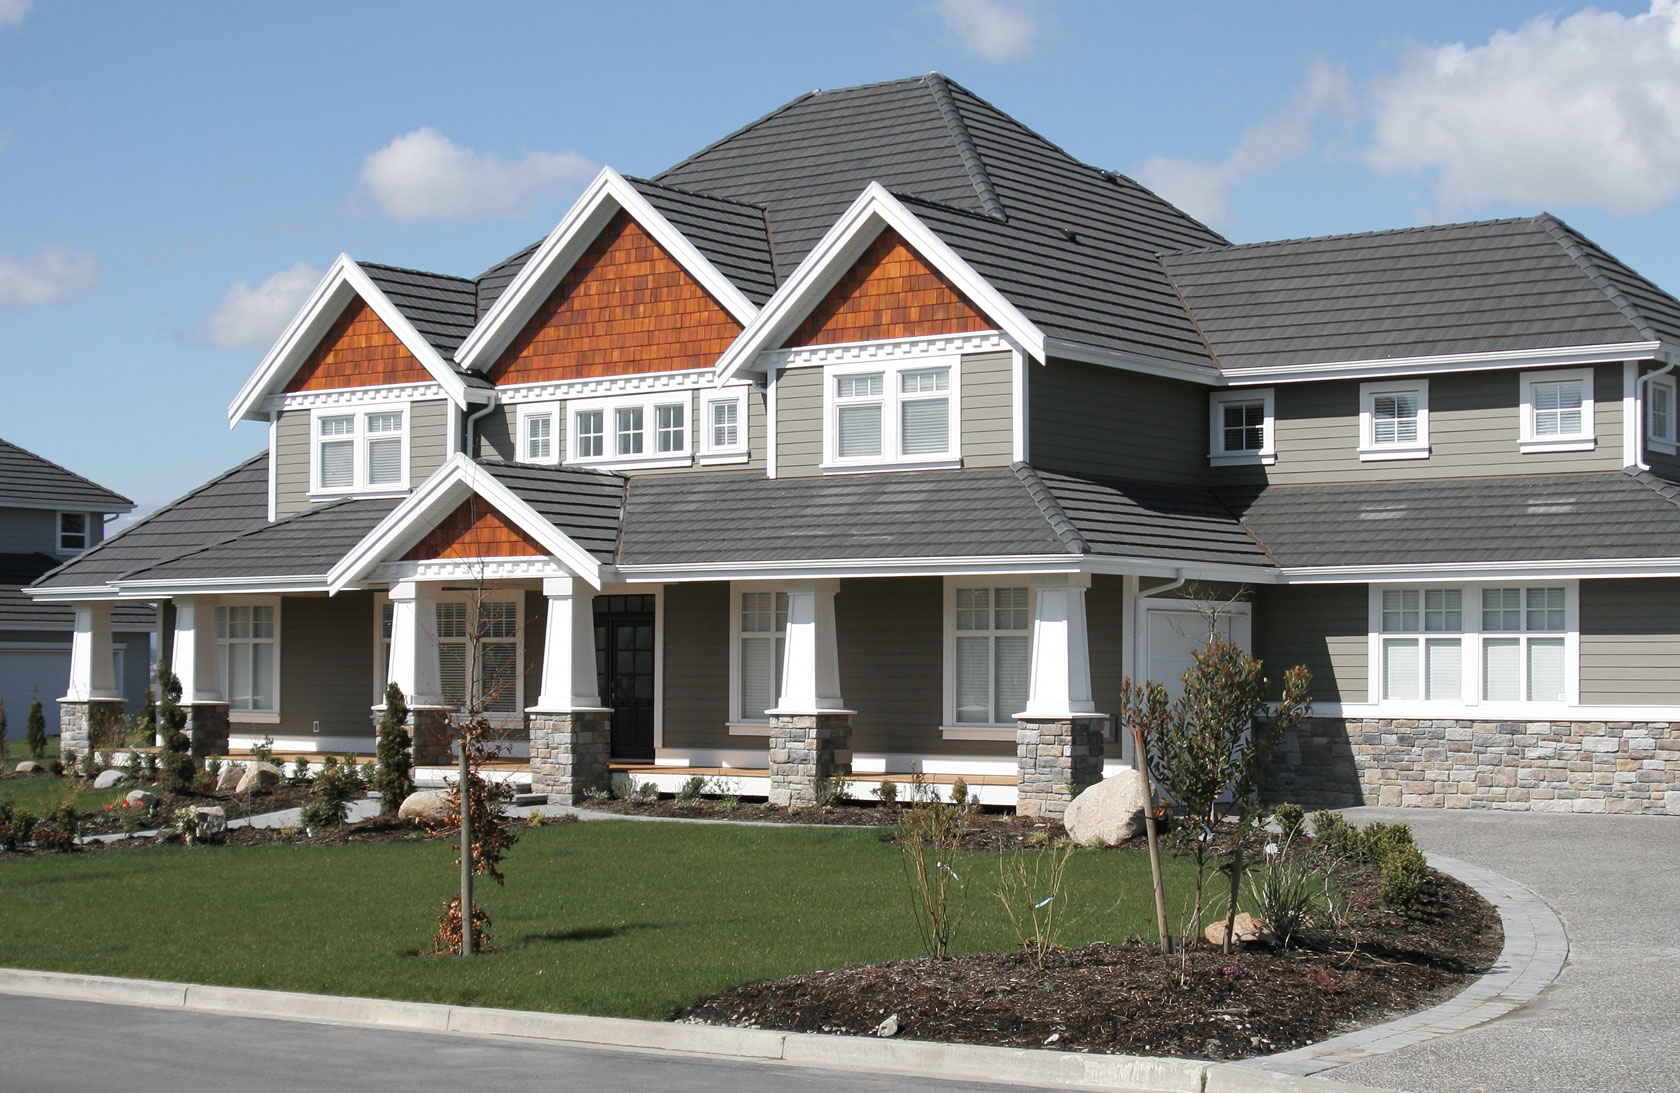 Residential Roofing Contractor in Portland OR & Vancouver WA | Northwest Roof Tech